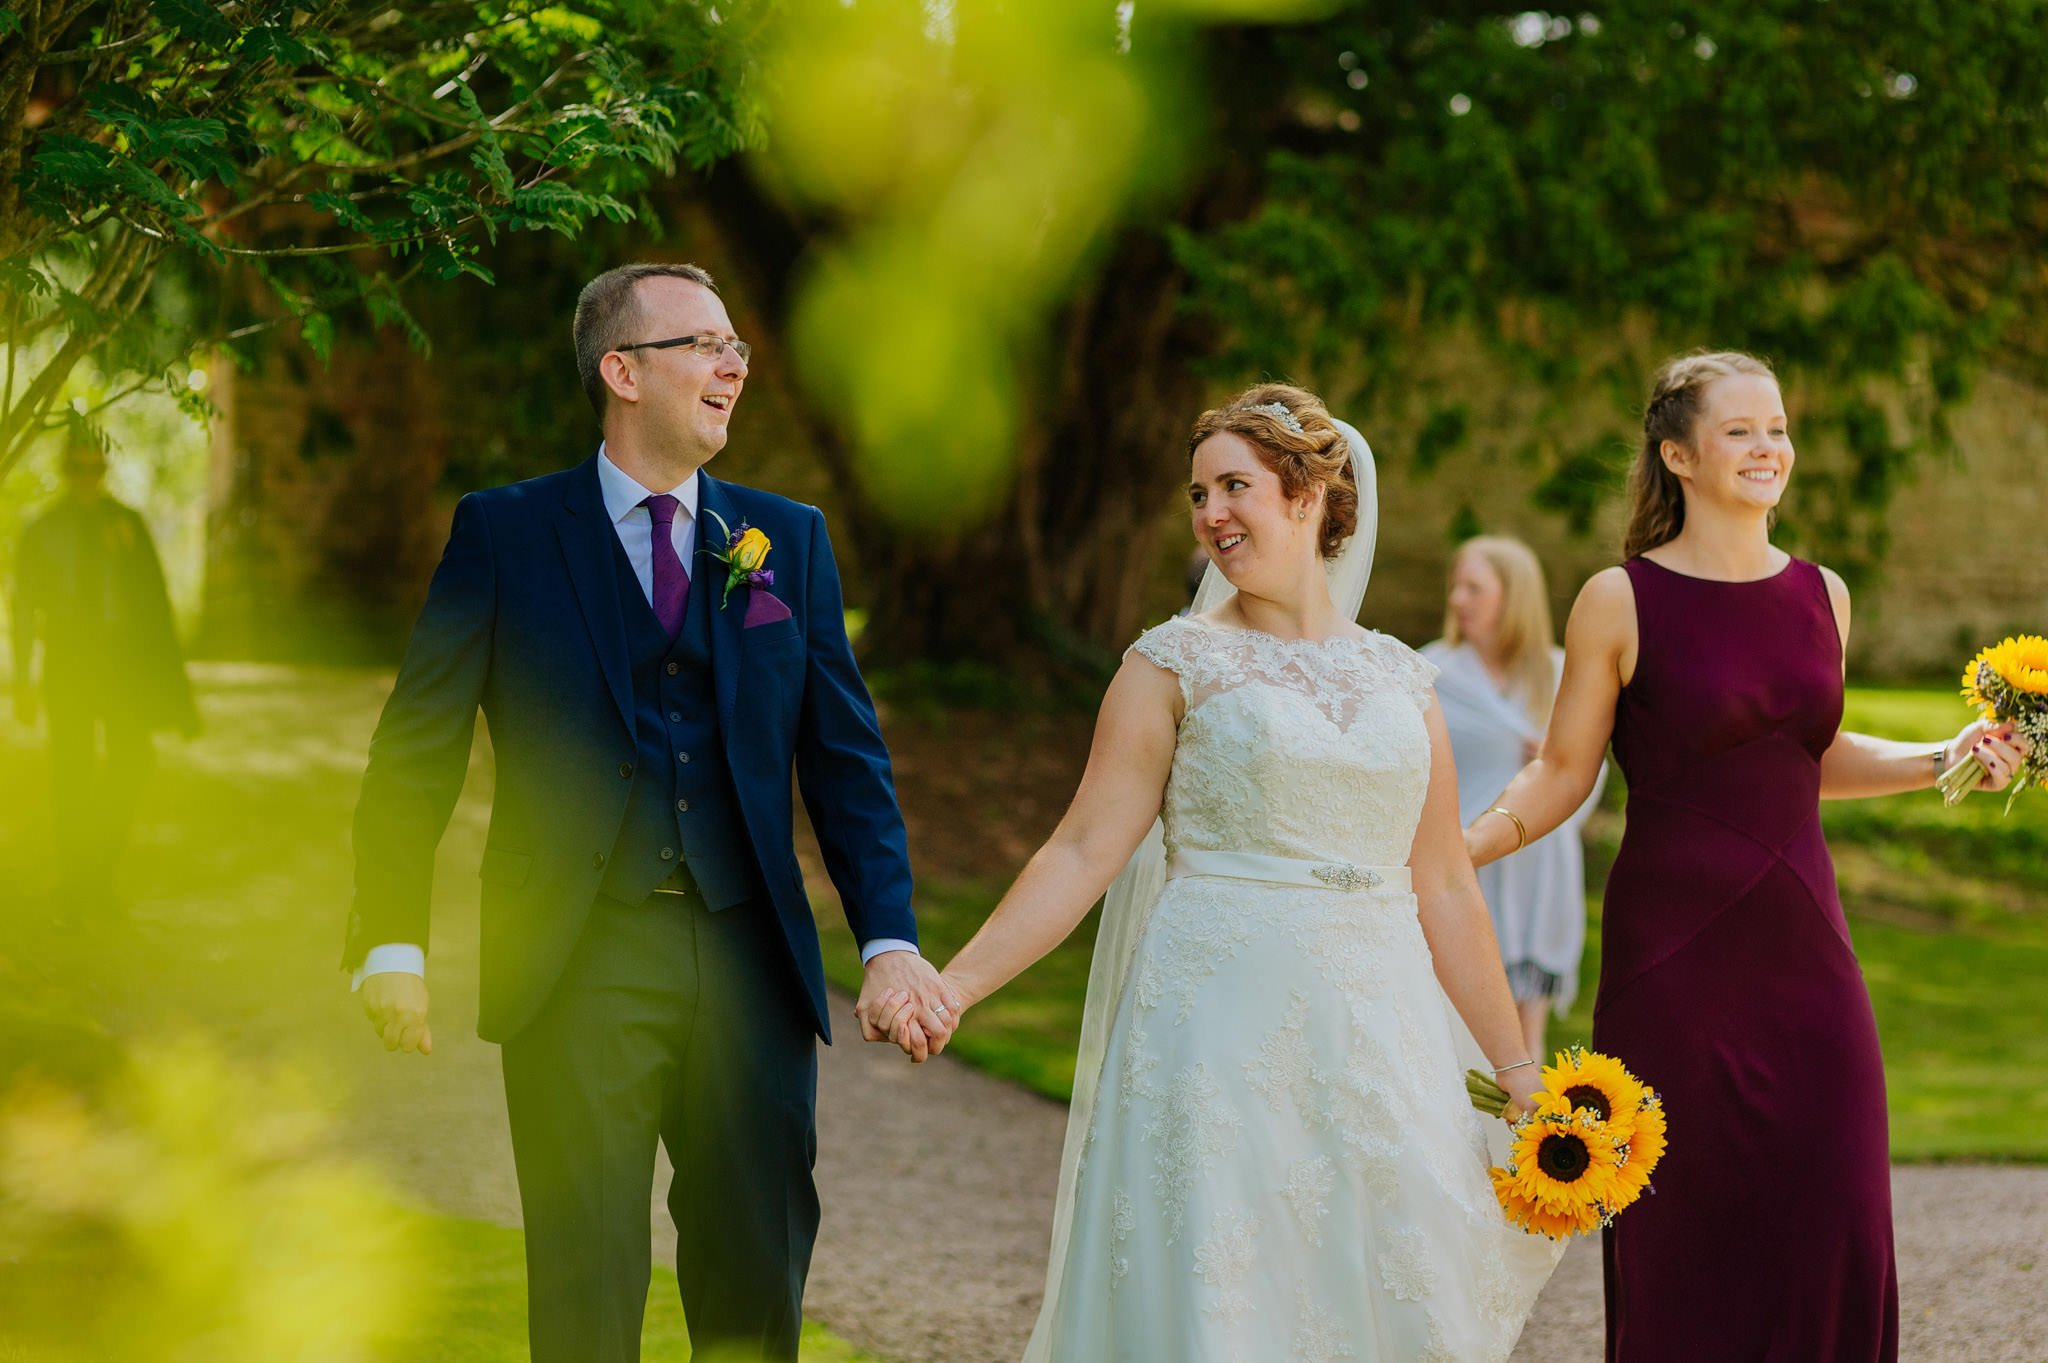 Wedding photography at Homme House in Herefordshire, West Midlands 47